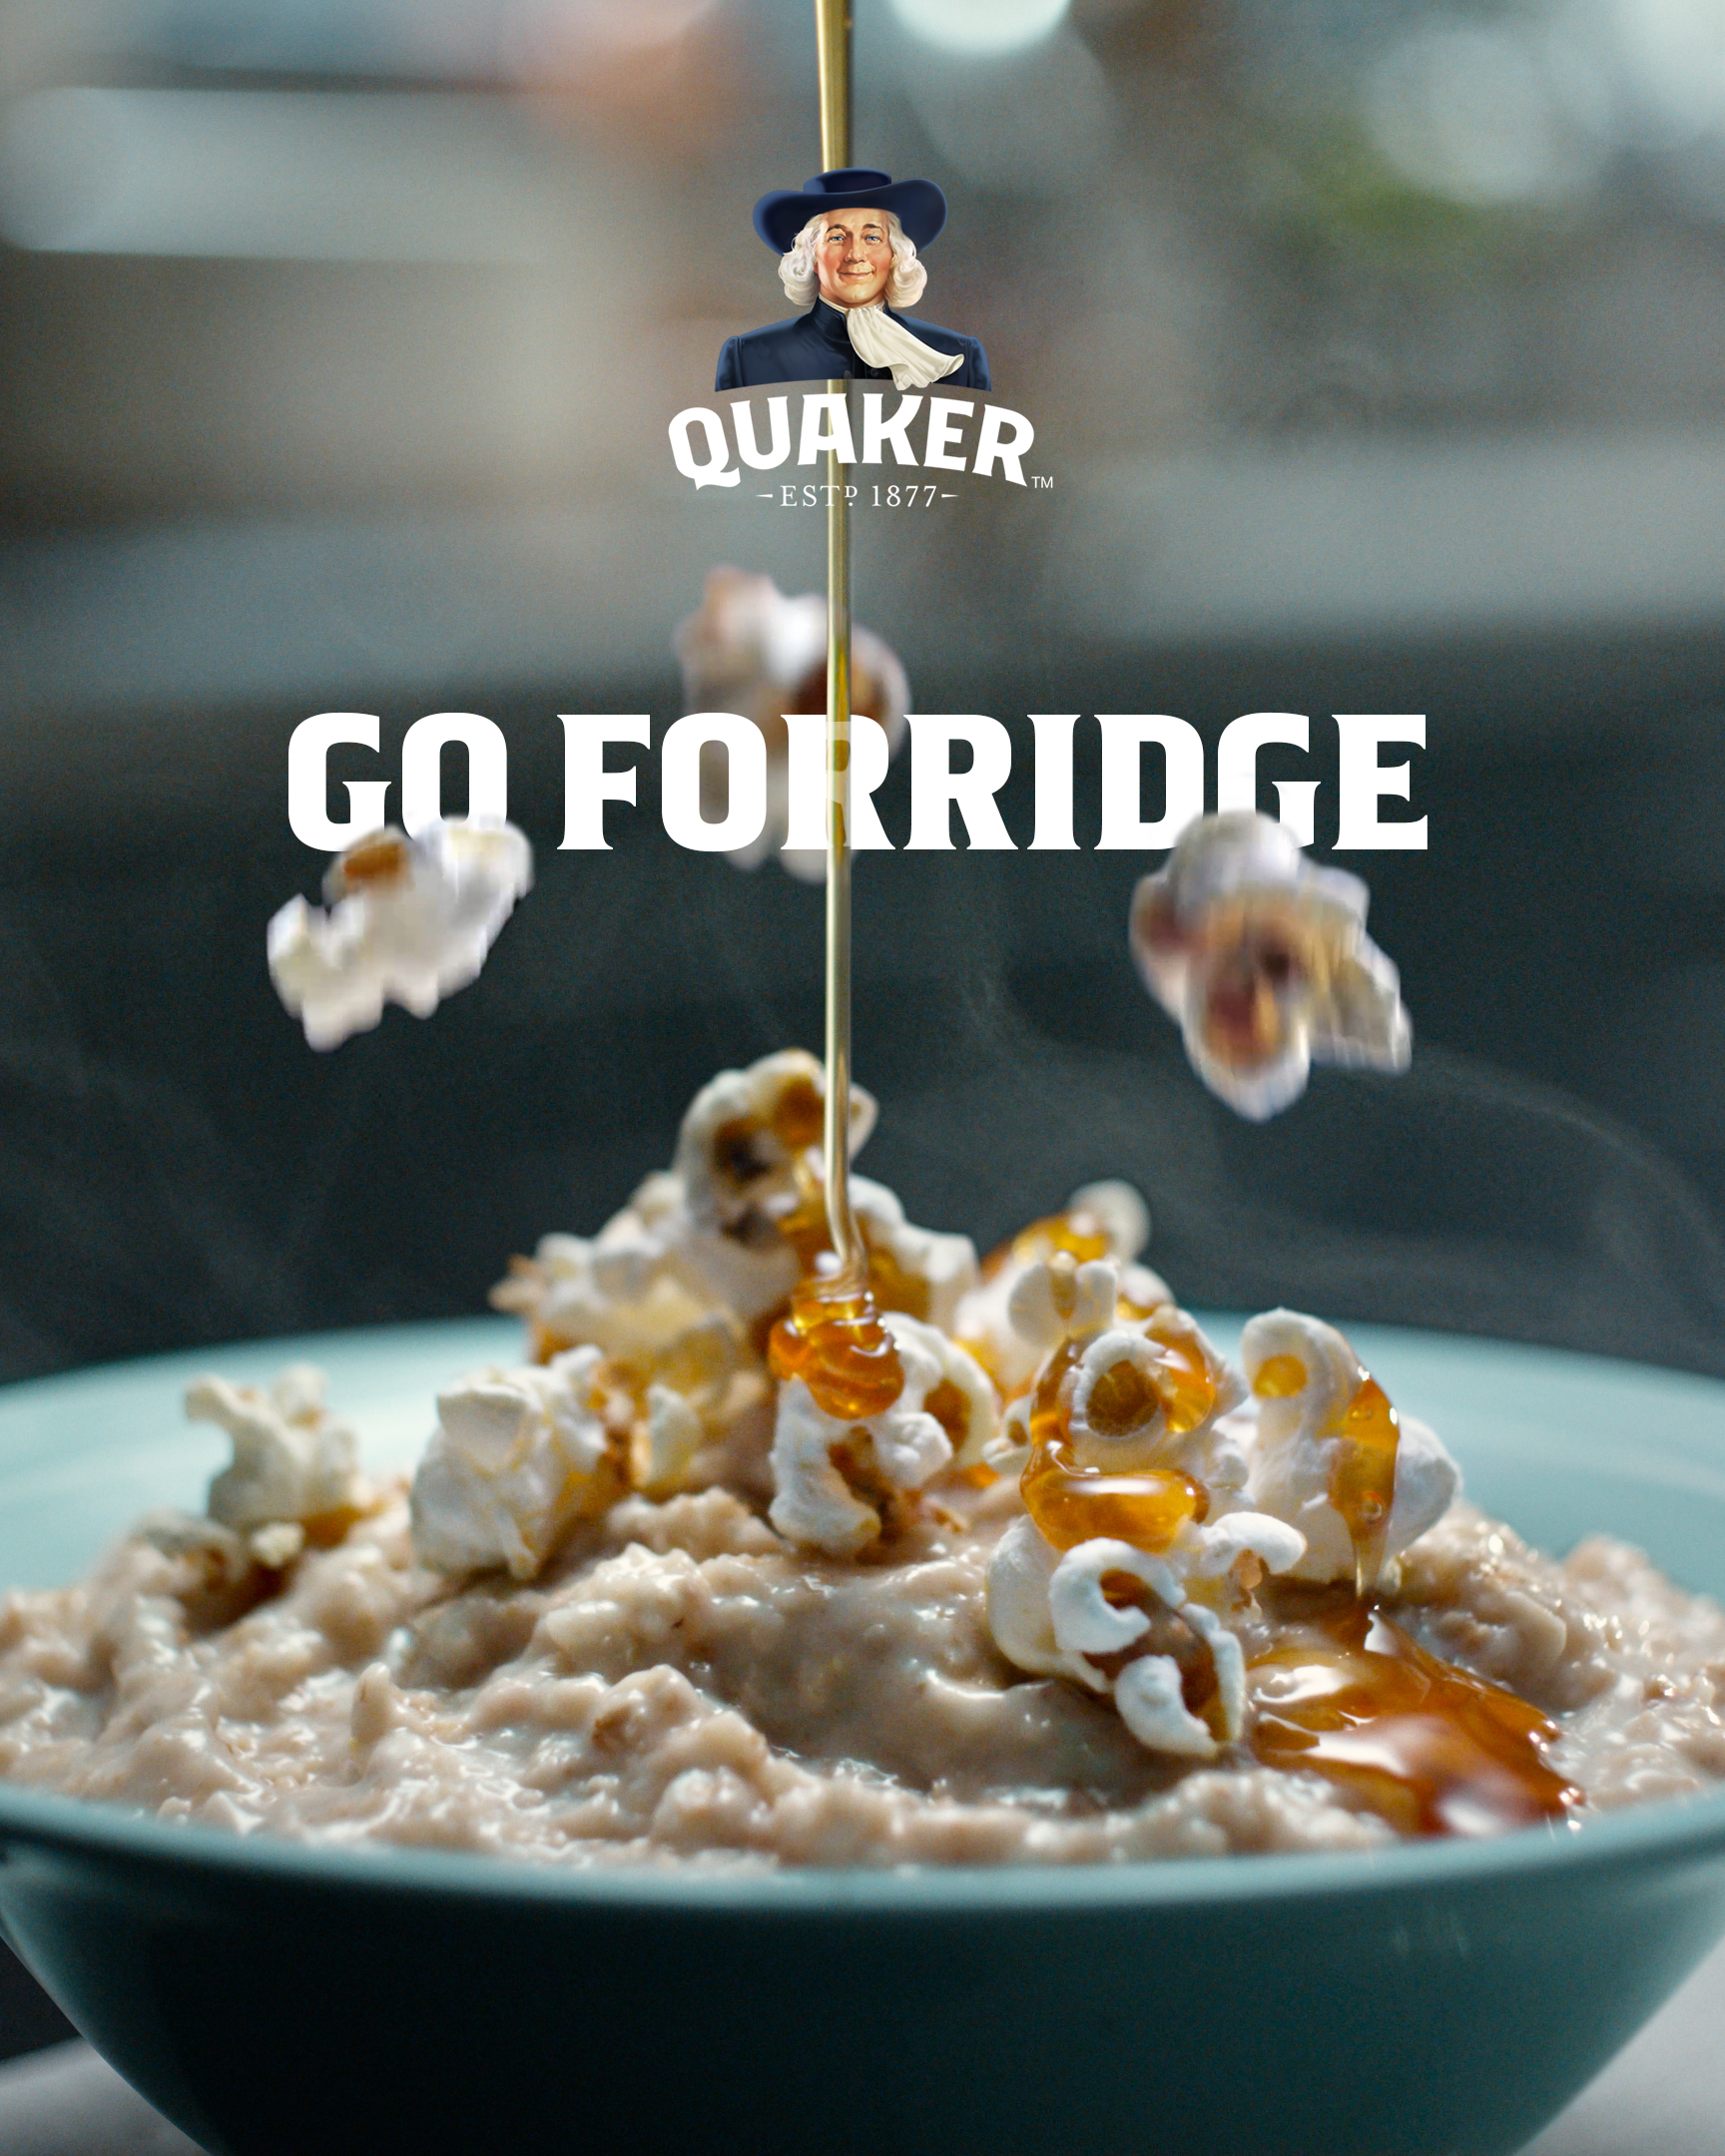 Quaker – Go Forridge